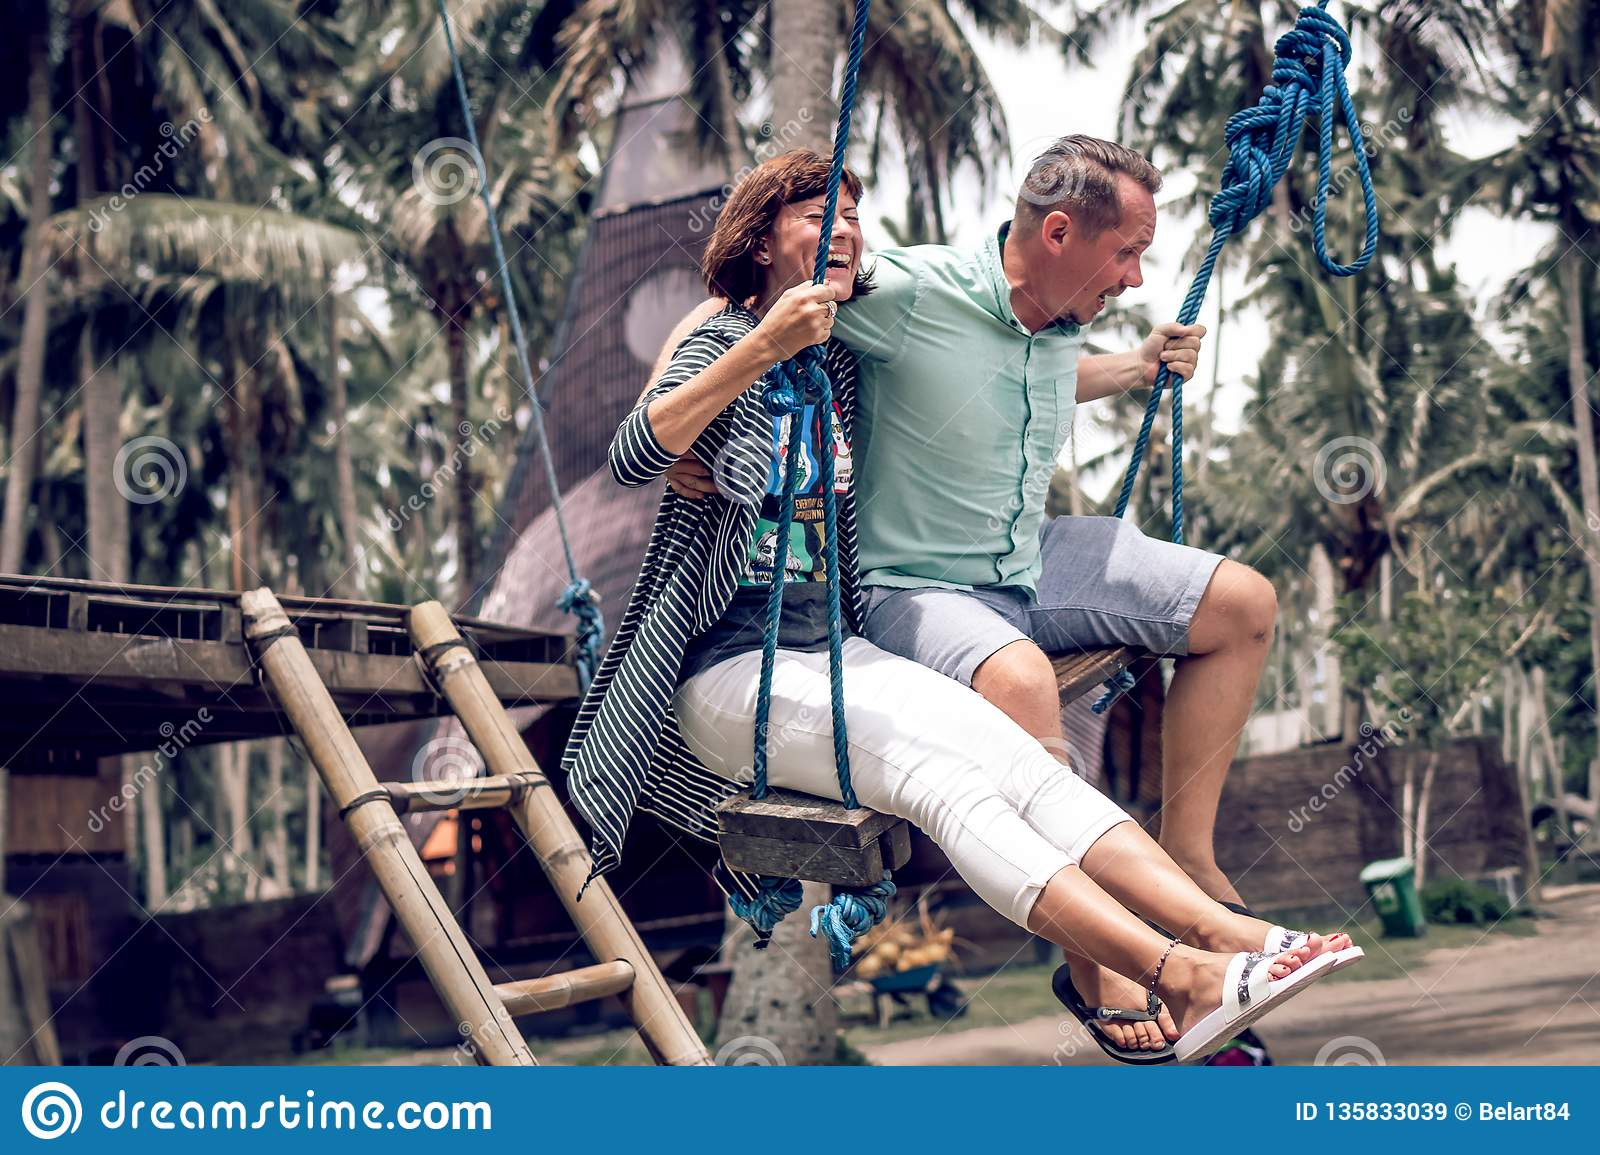 young couple swinging info